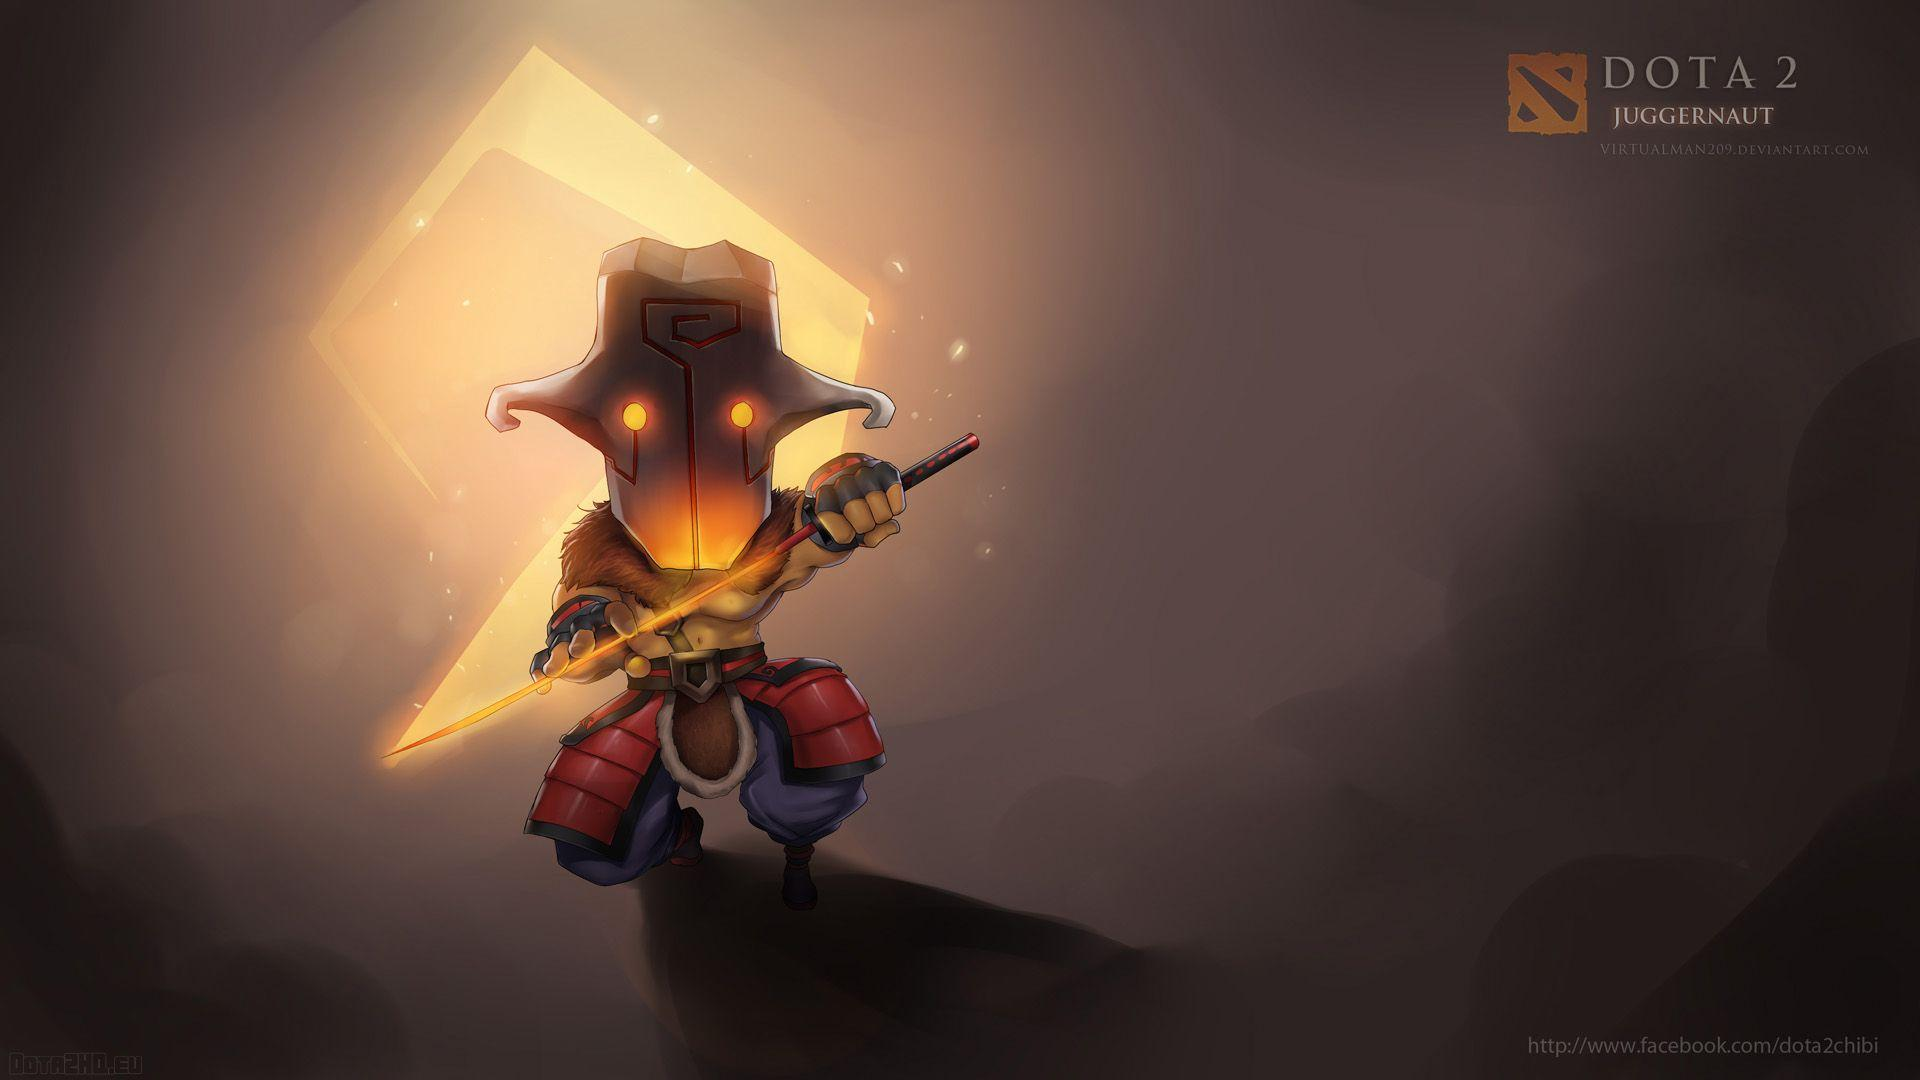 Dota 2 Juggernaut Wallpapers 1080p | Game | Pinterest | Wallpaper